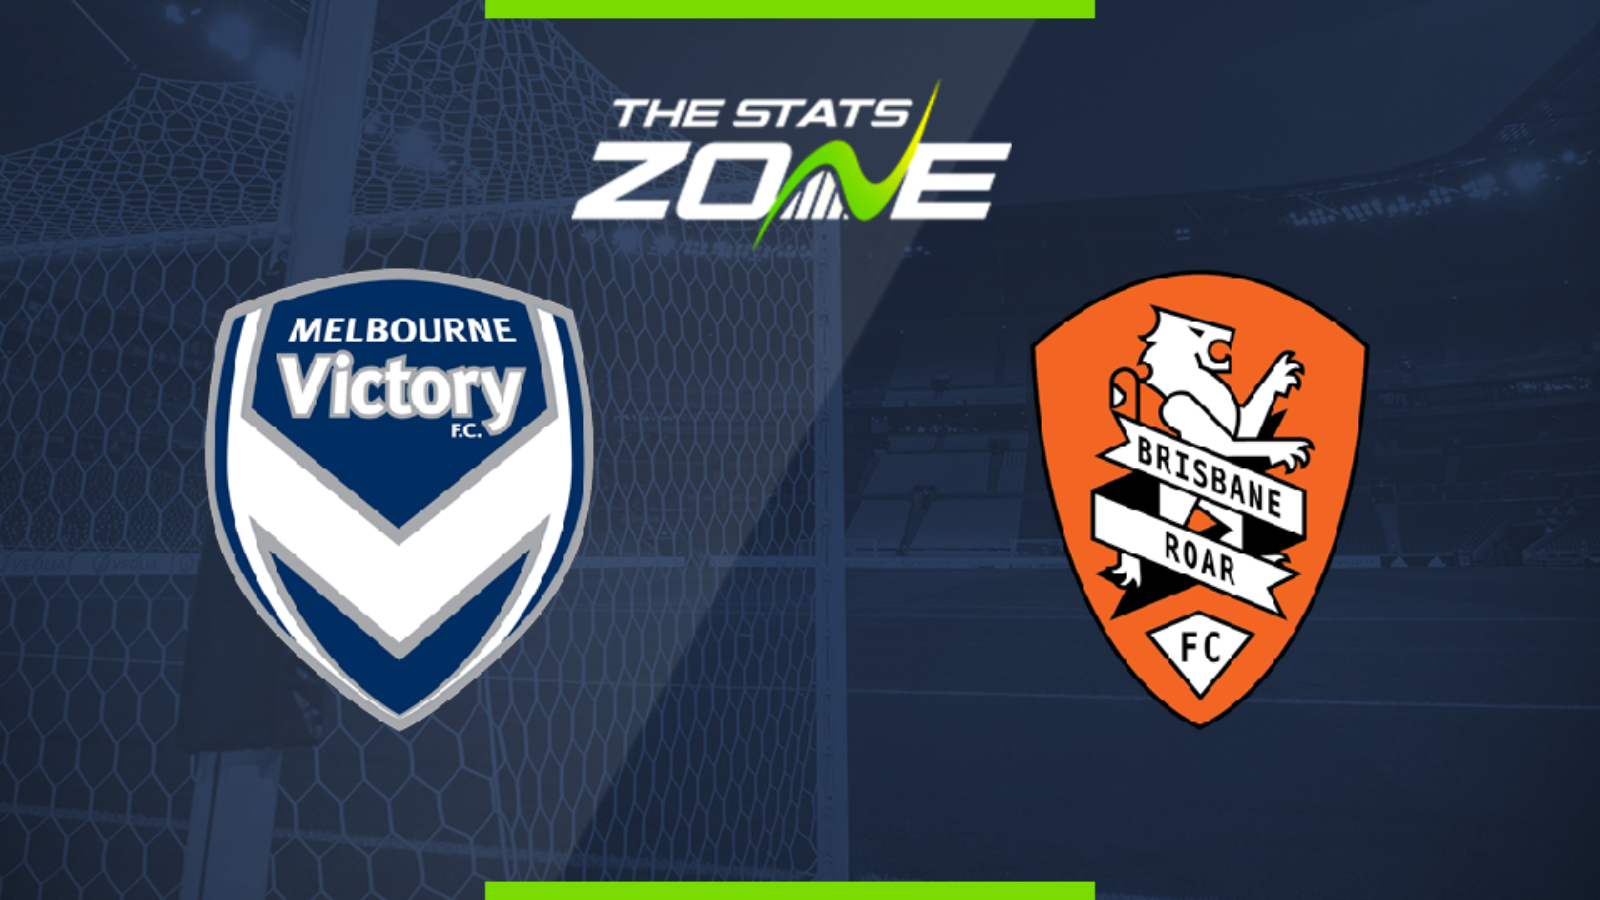 Melbourne victory v brisbane roar betting expert boxing best binary options signals reviews of zootopia